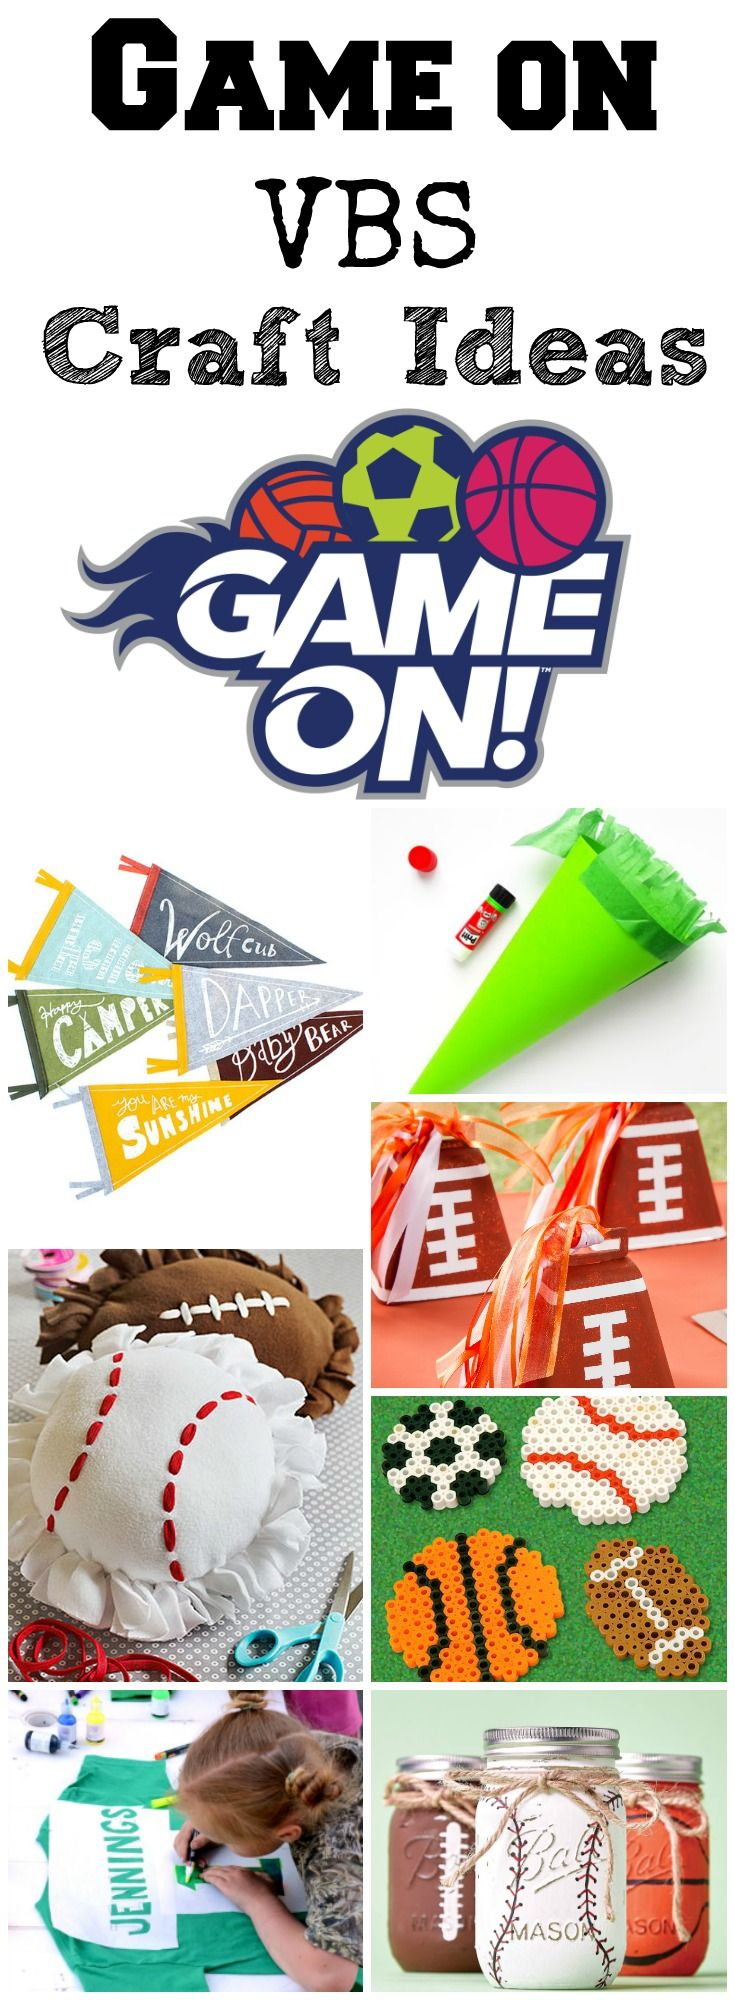 Sports Craft Ideas For Kids Game On Vbs Southern Made